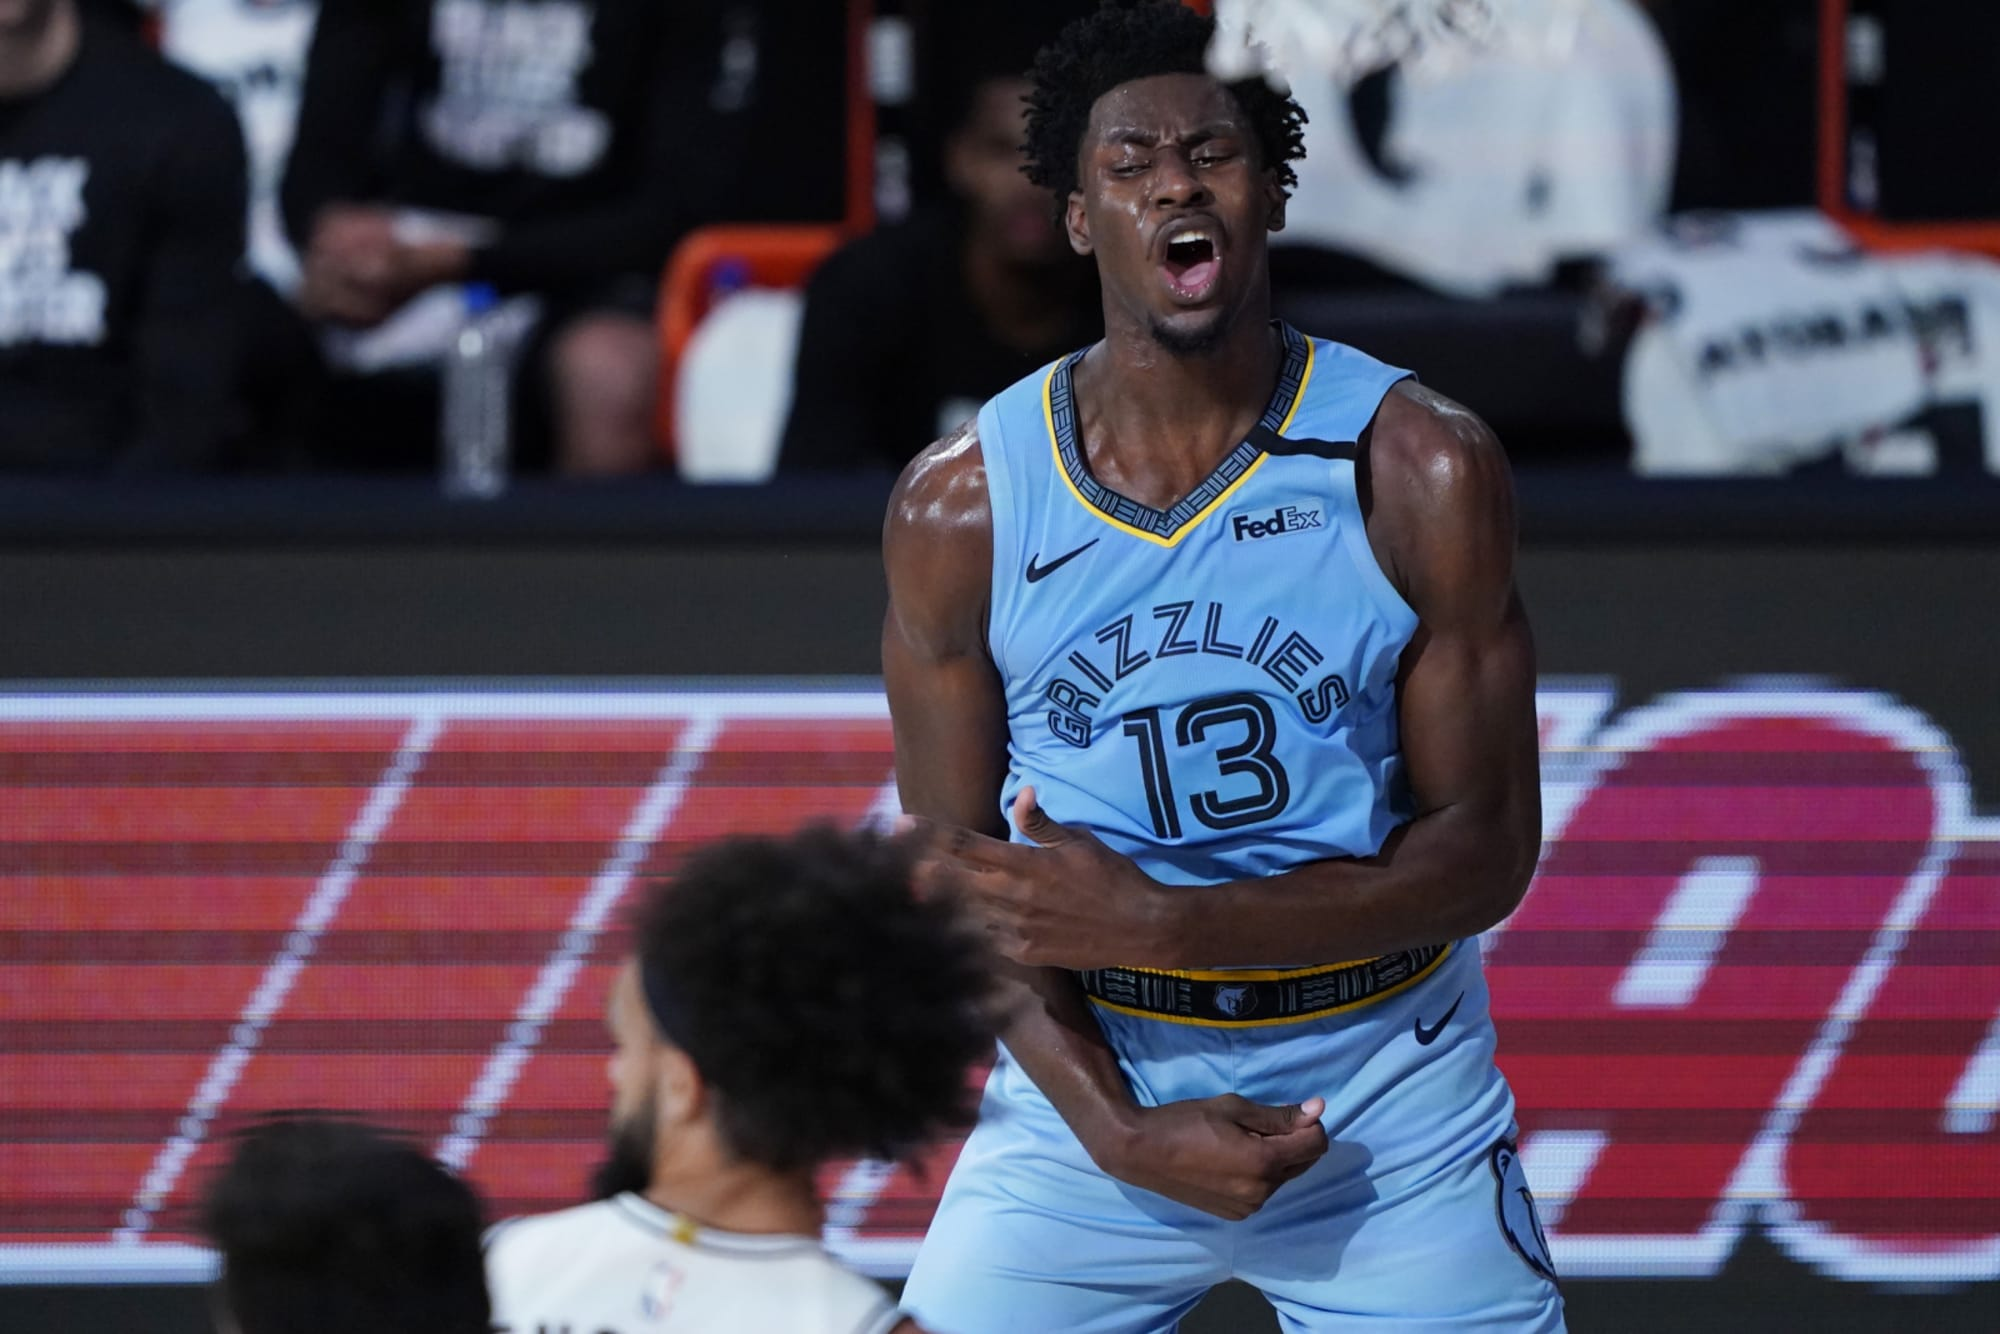 Jaren Jackson Jr.'s injury is a serious blow to the Grizzlies' playoff chances